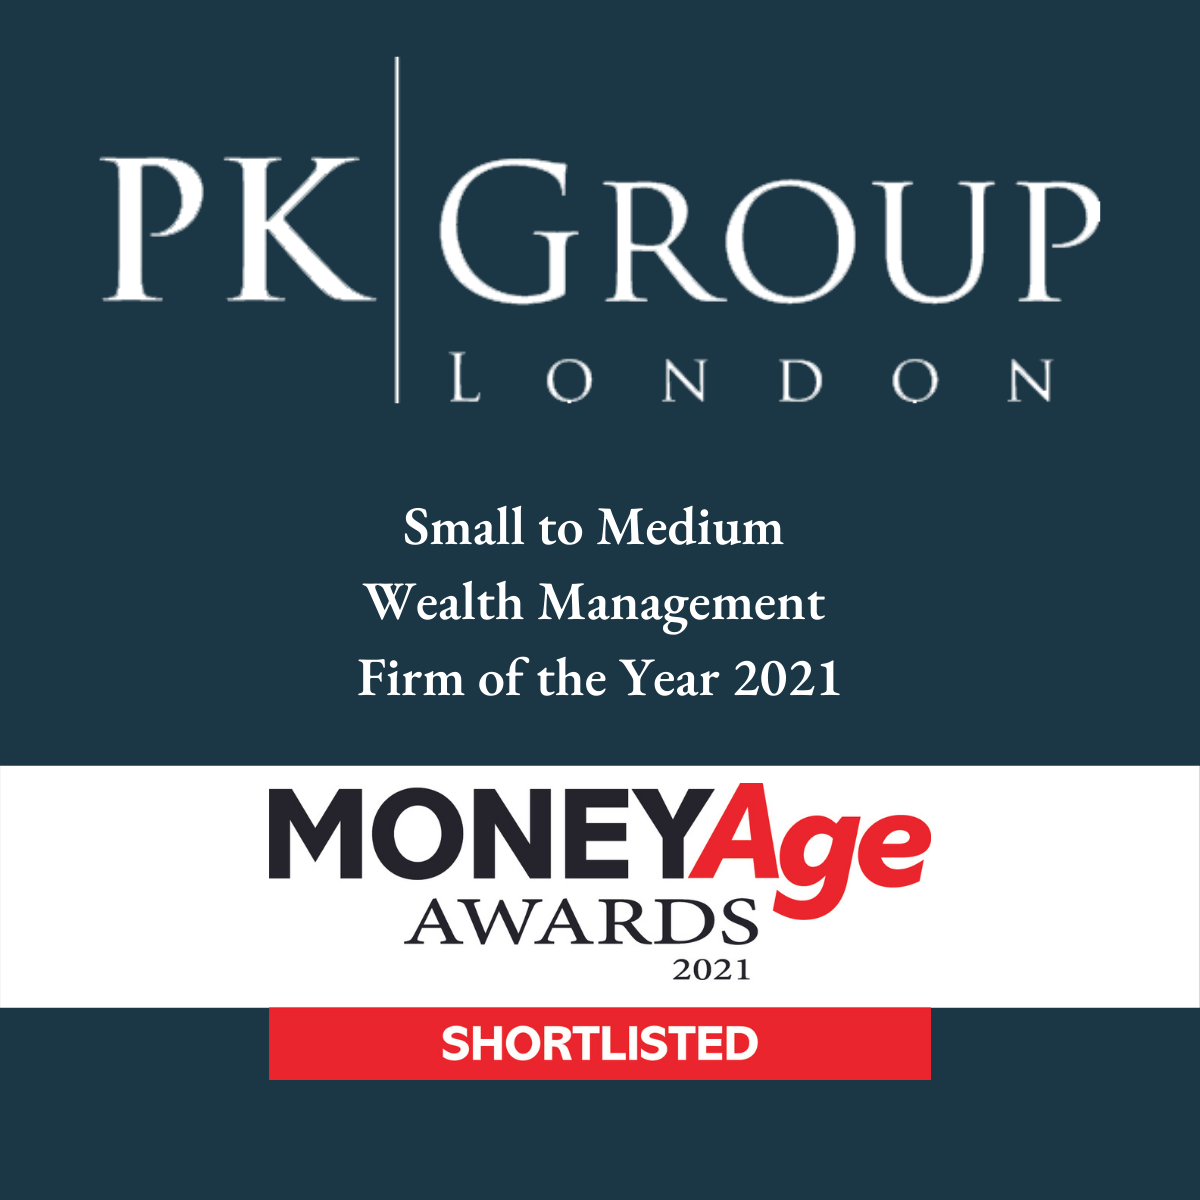 PK Group shortlisted in the MoneyAge Awards 2021